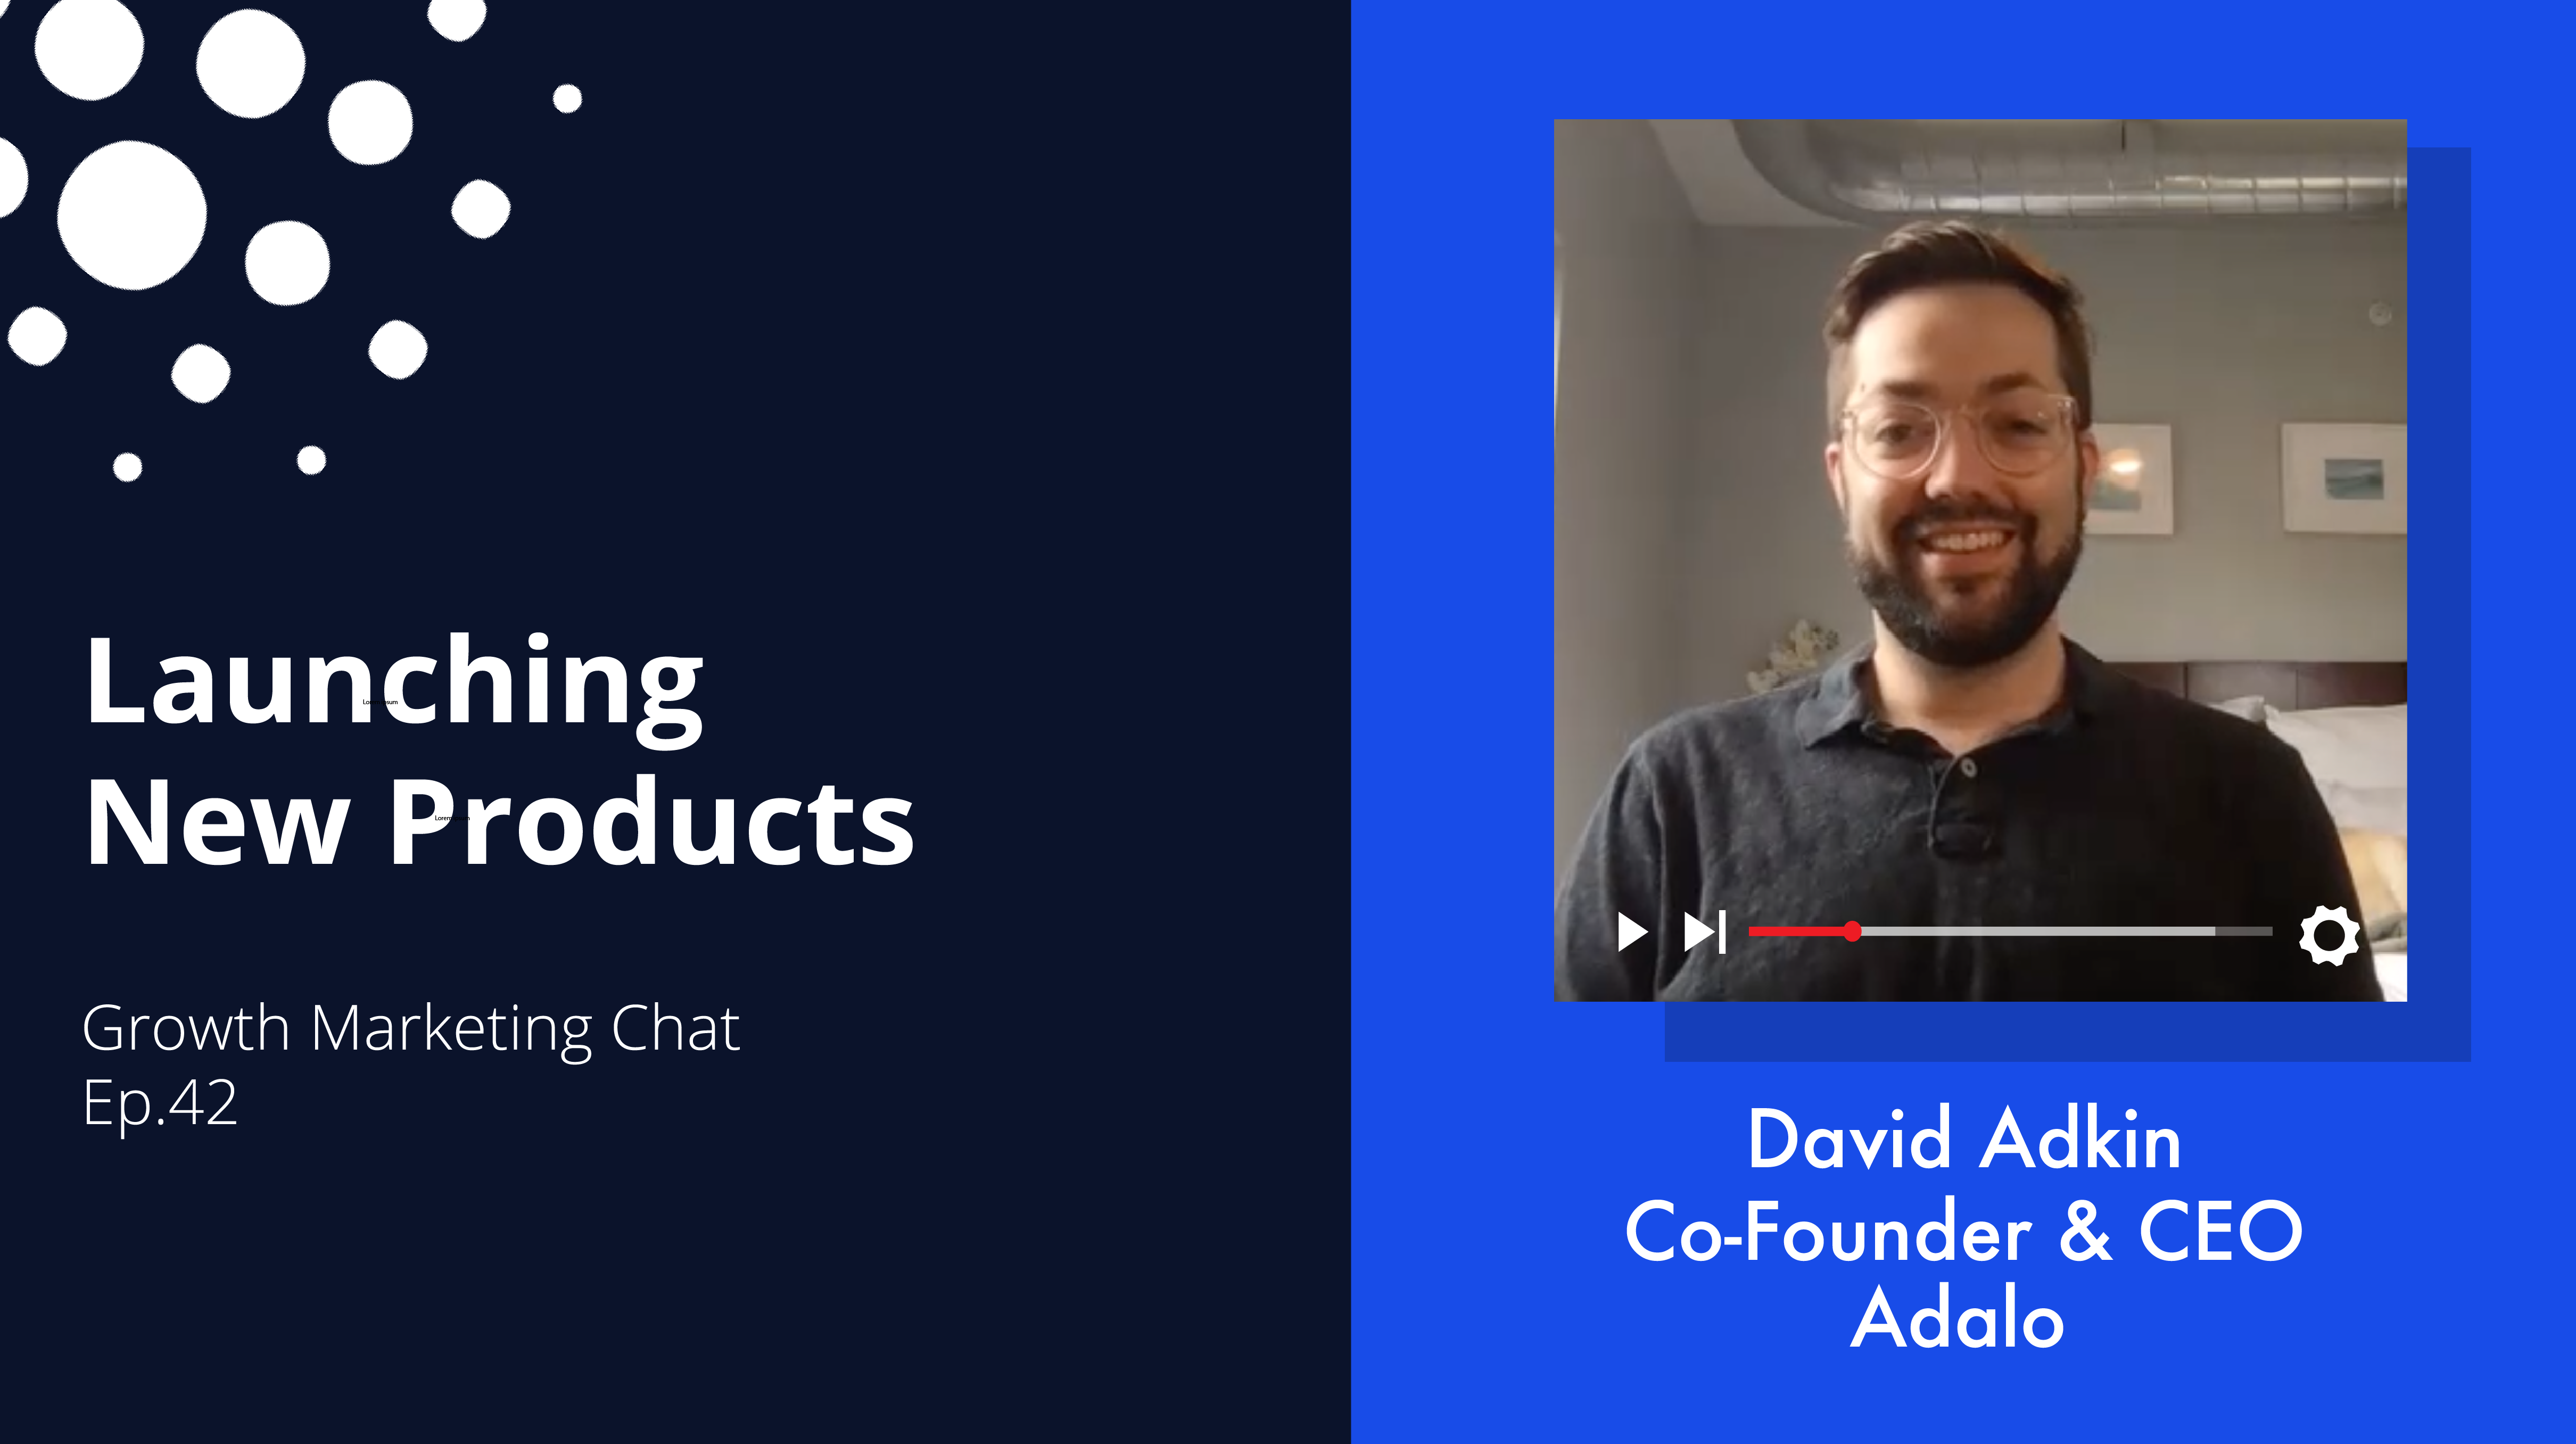 B2B SaaS Marketing: How to Launch Your New Product Successfully